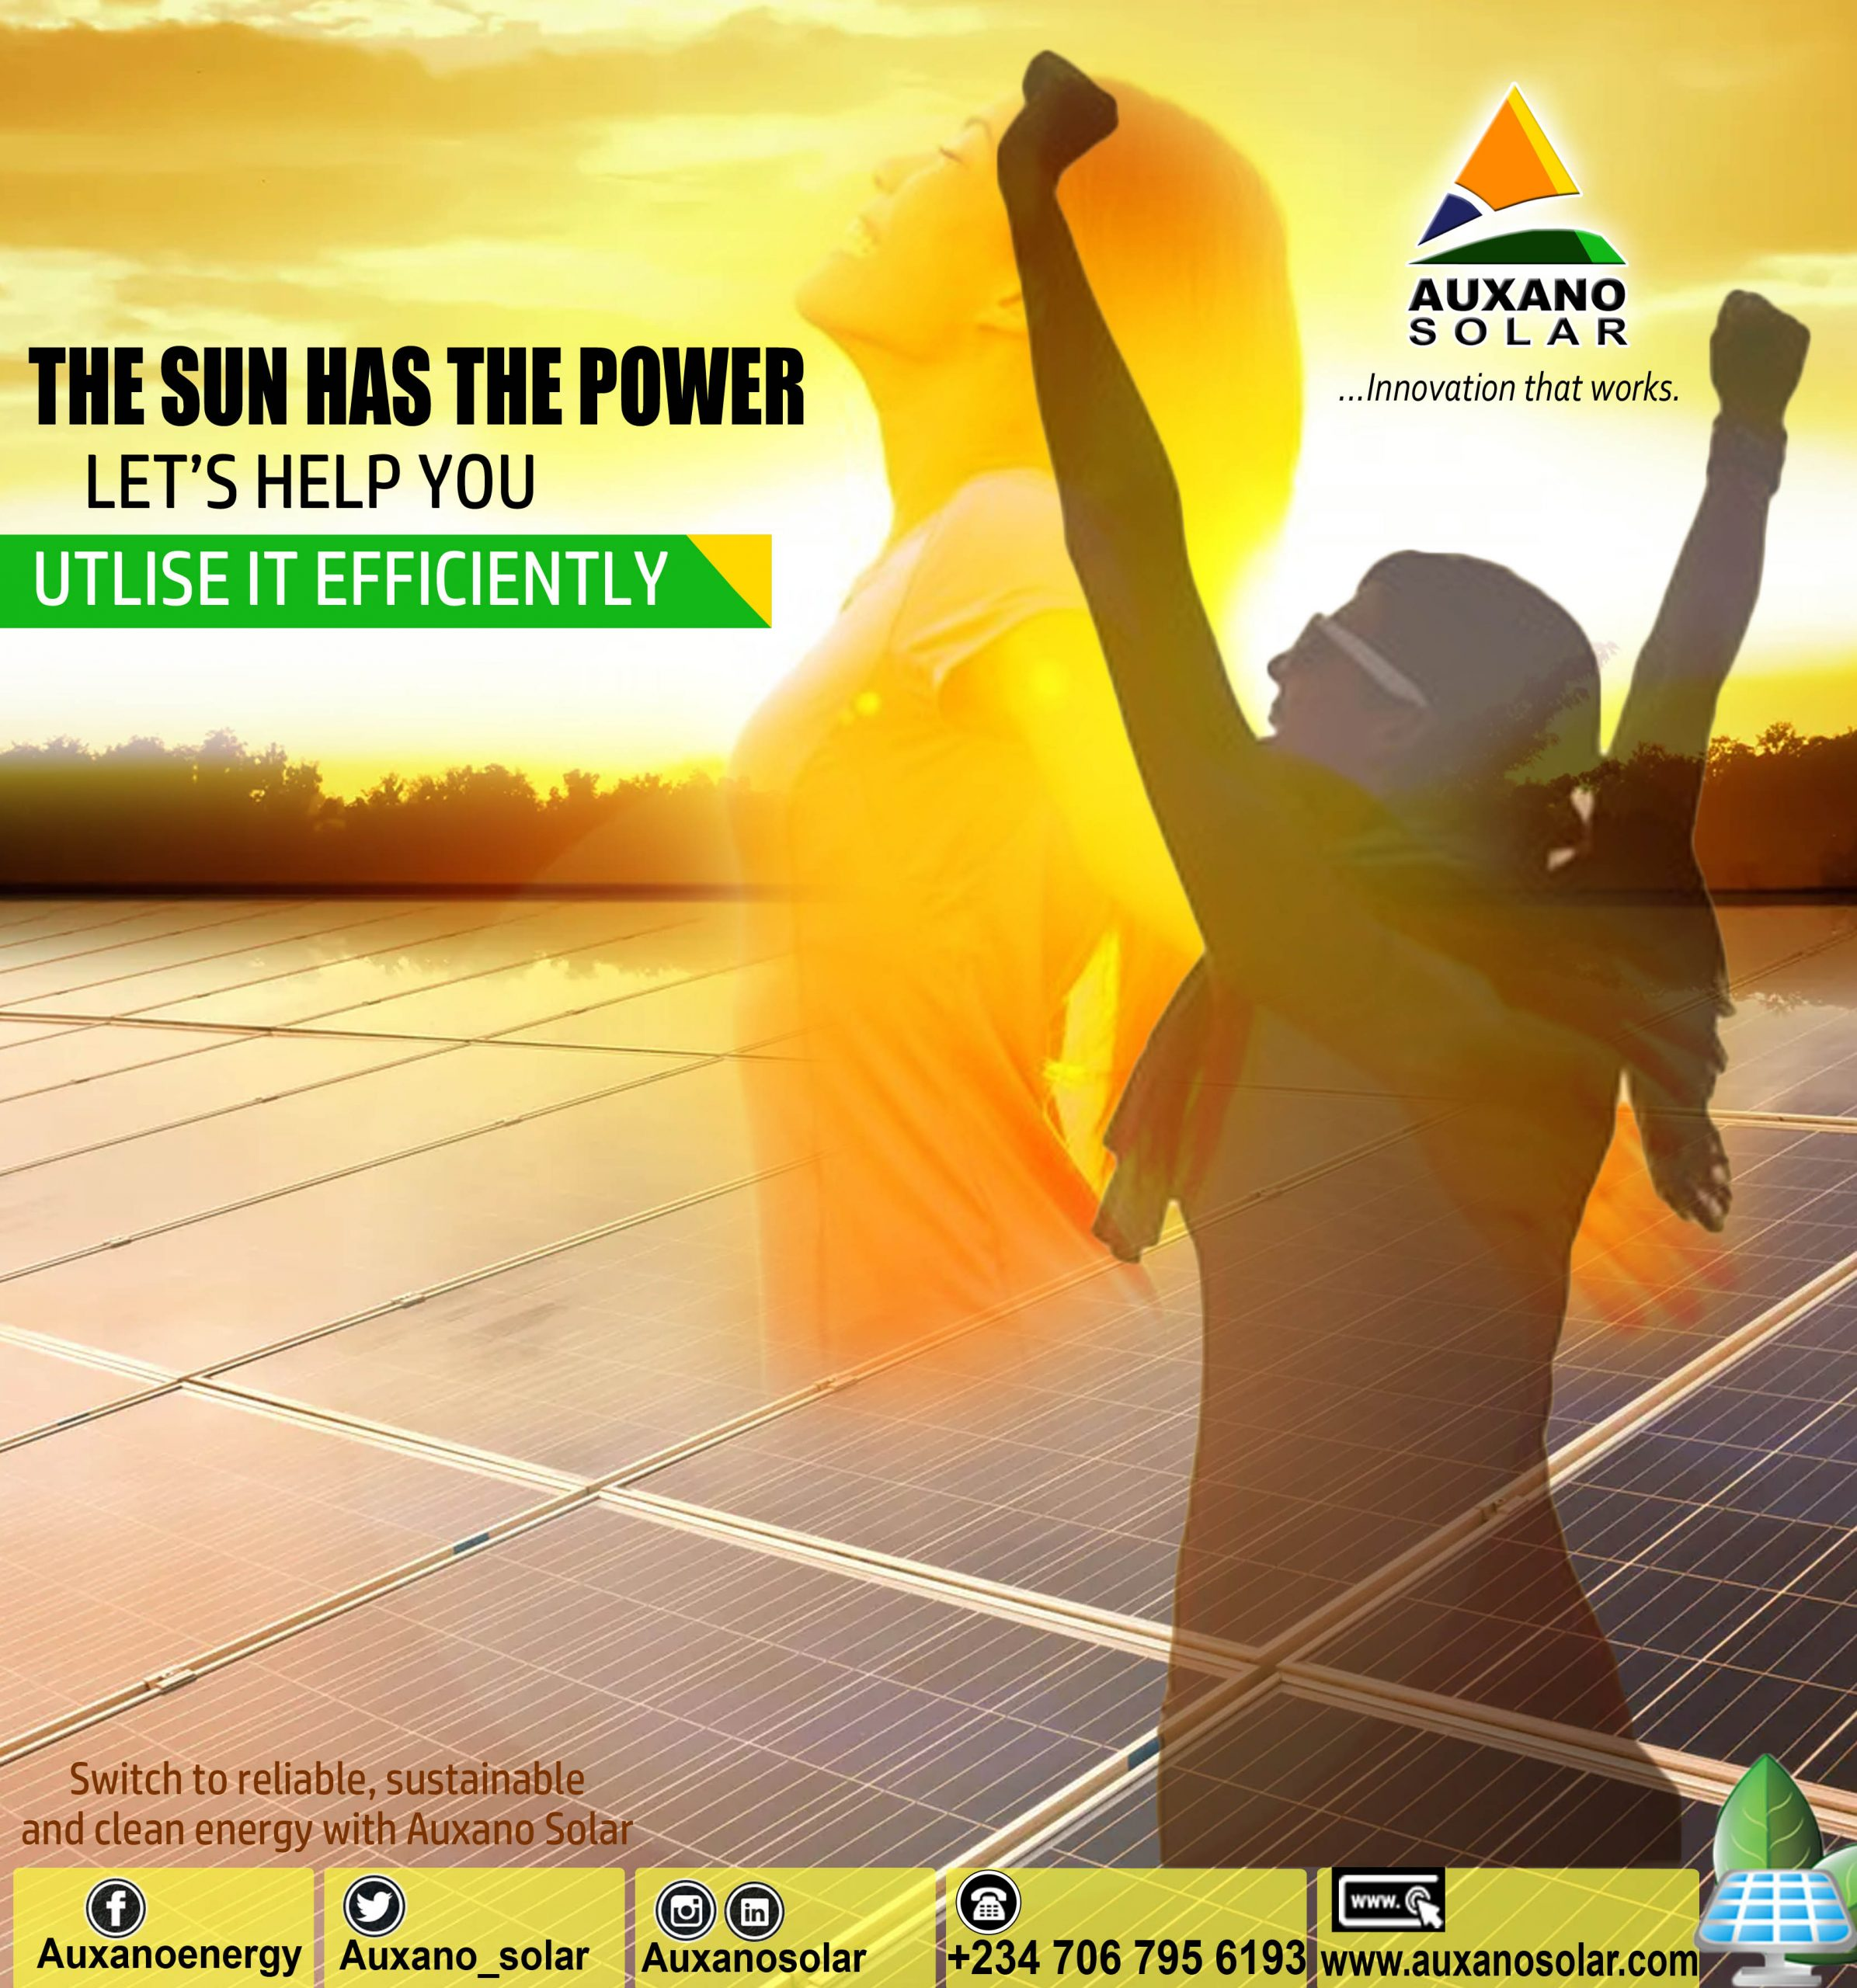 Switch to reliable, sustainable, and clean energy with Auxano Solar